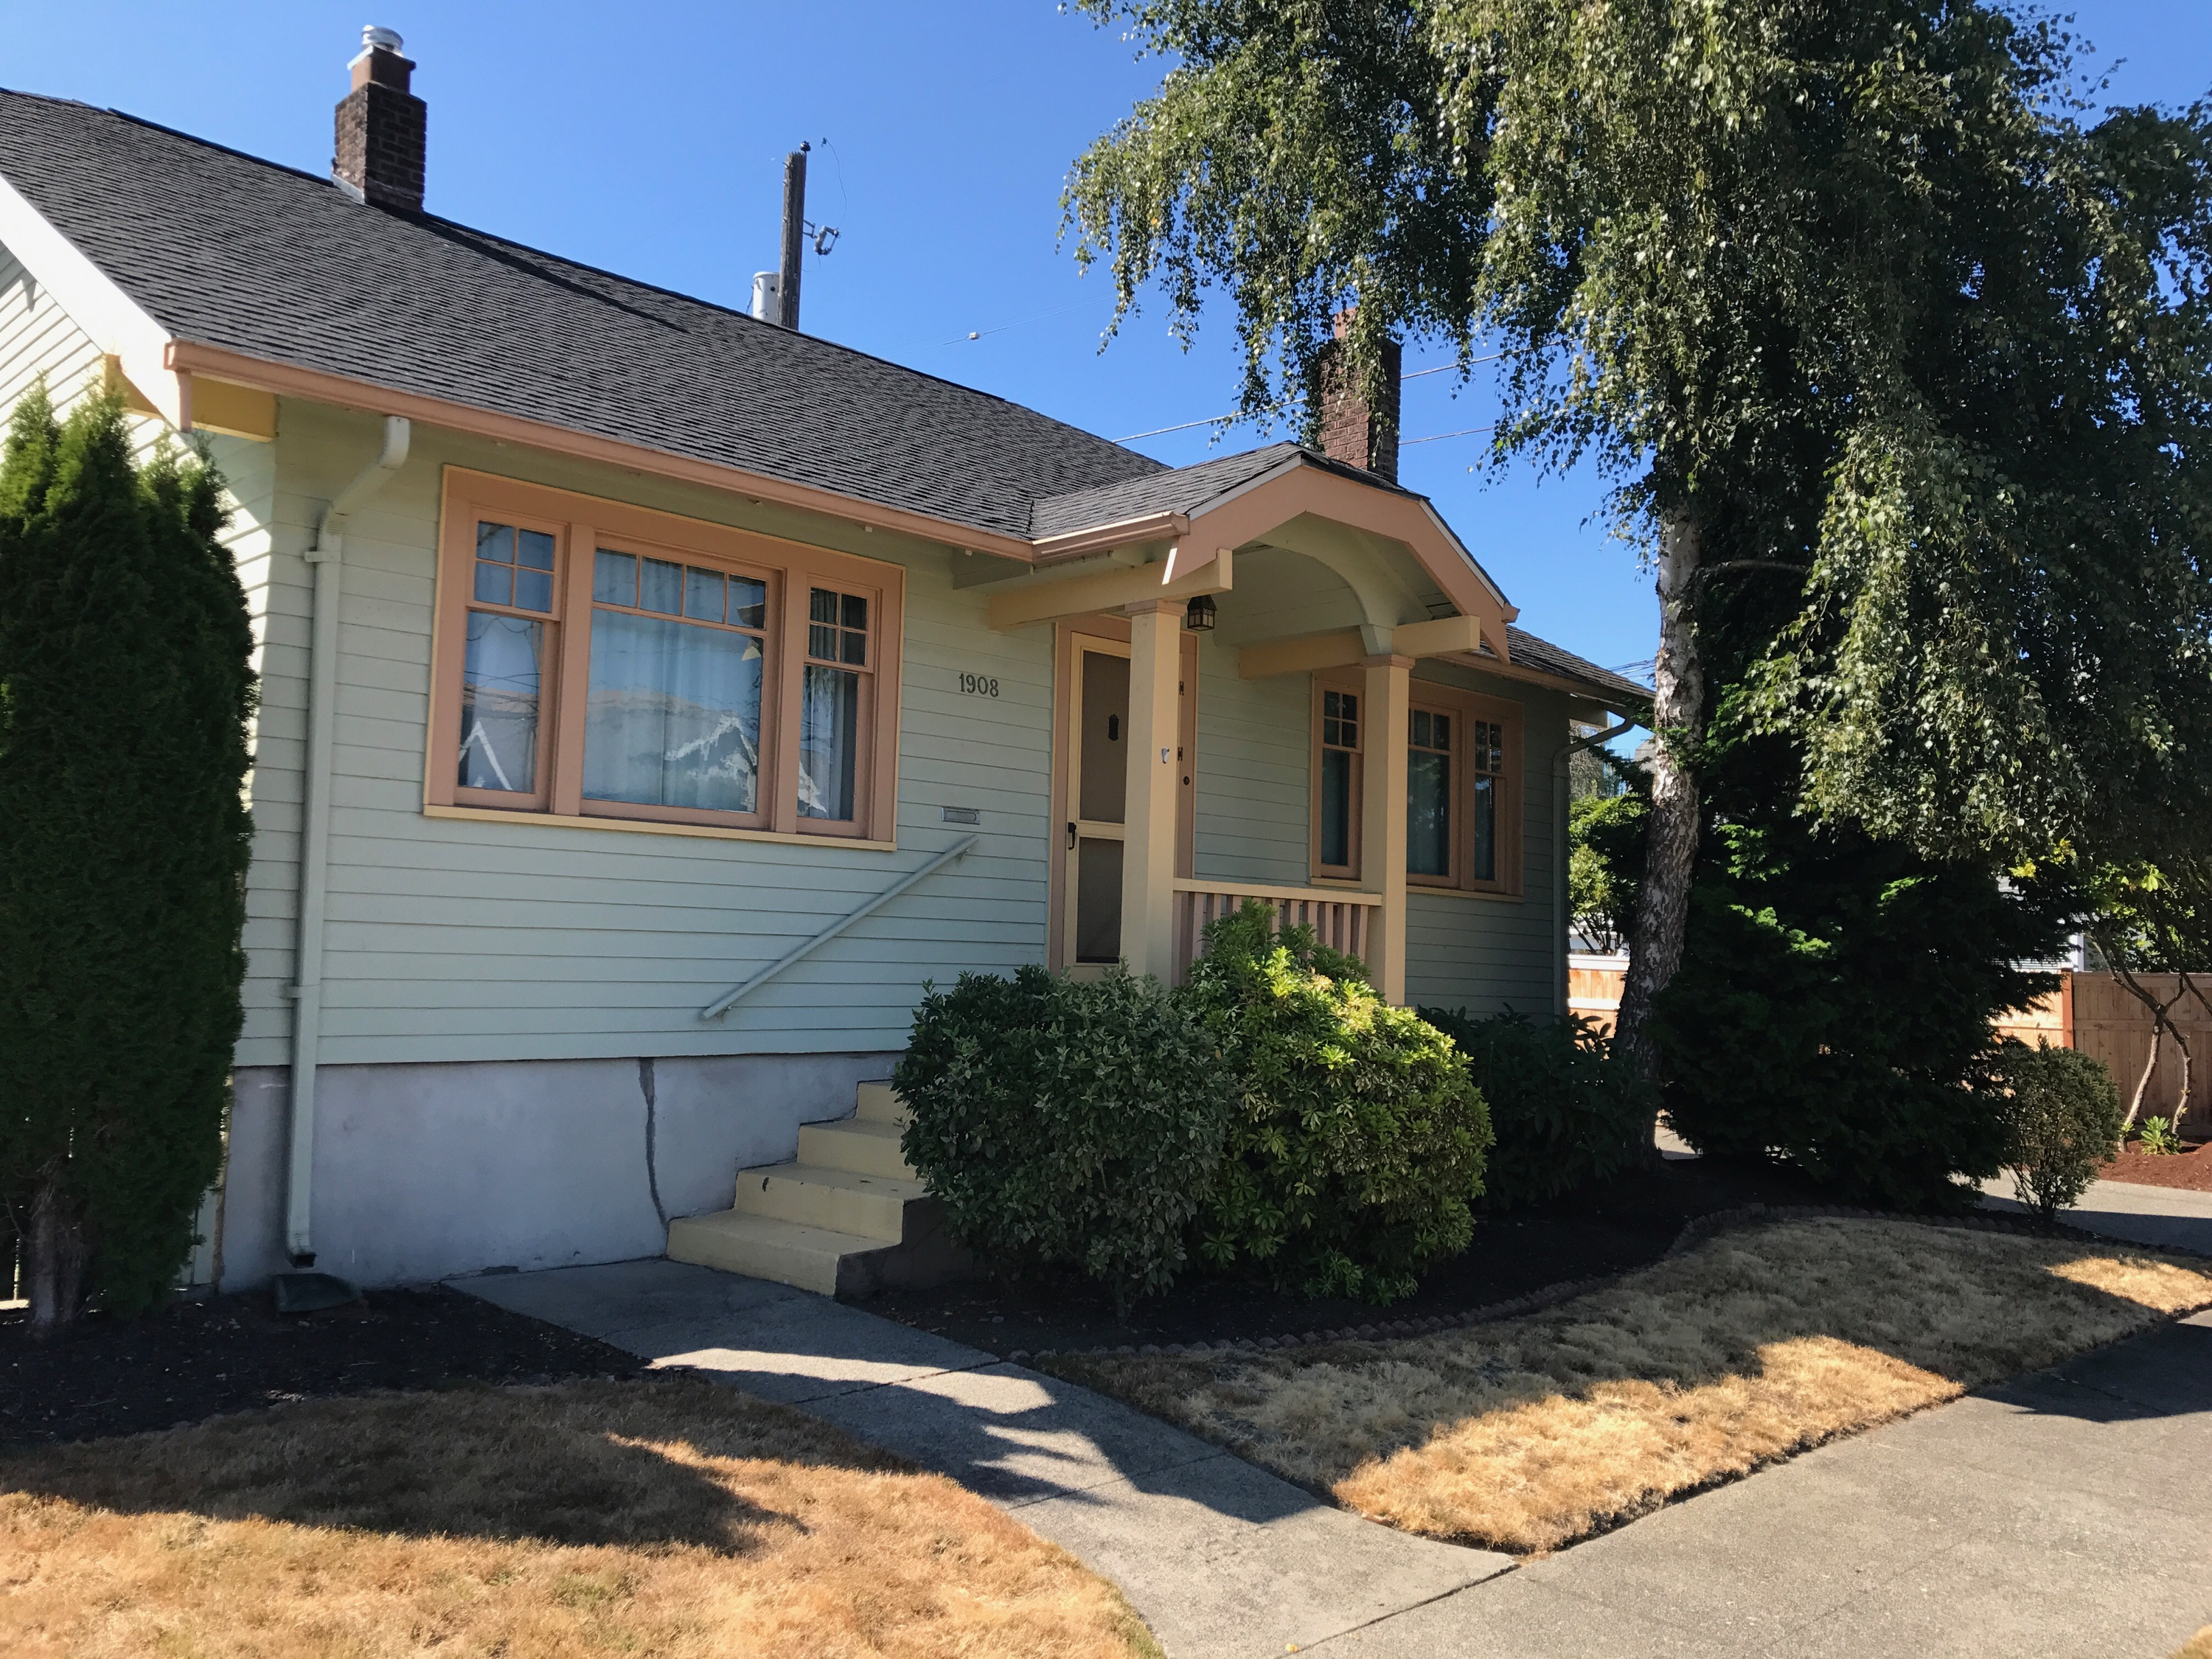 North Tacoma Area Single Family 1908 N Alder St WA 98406